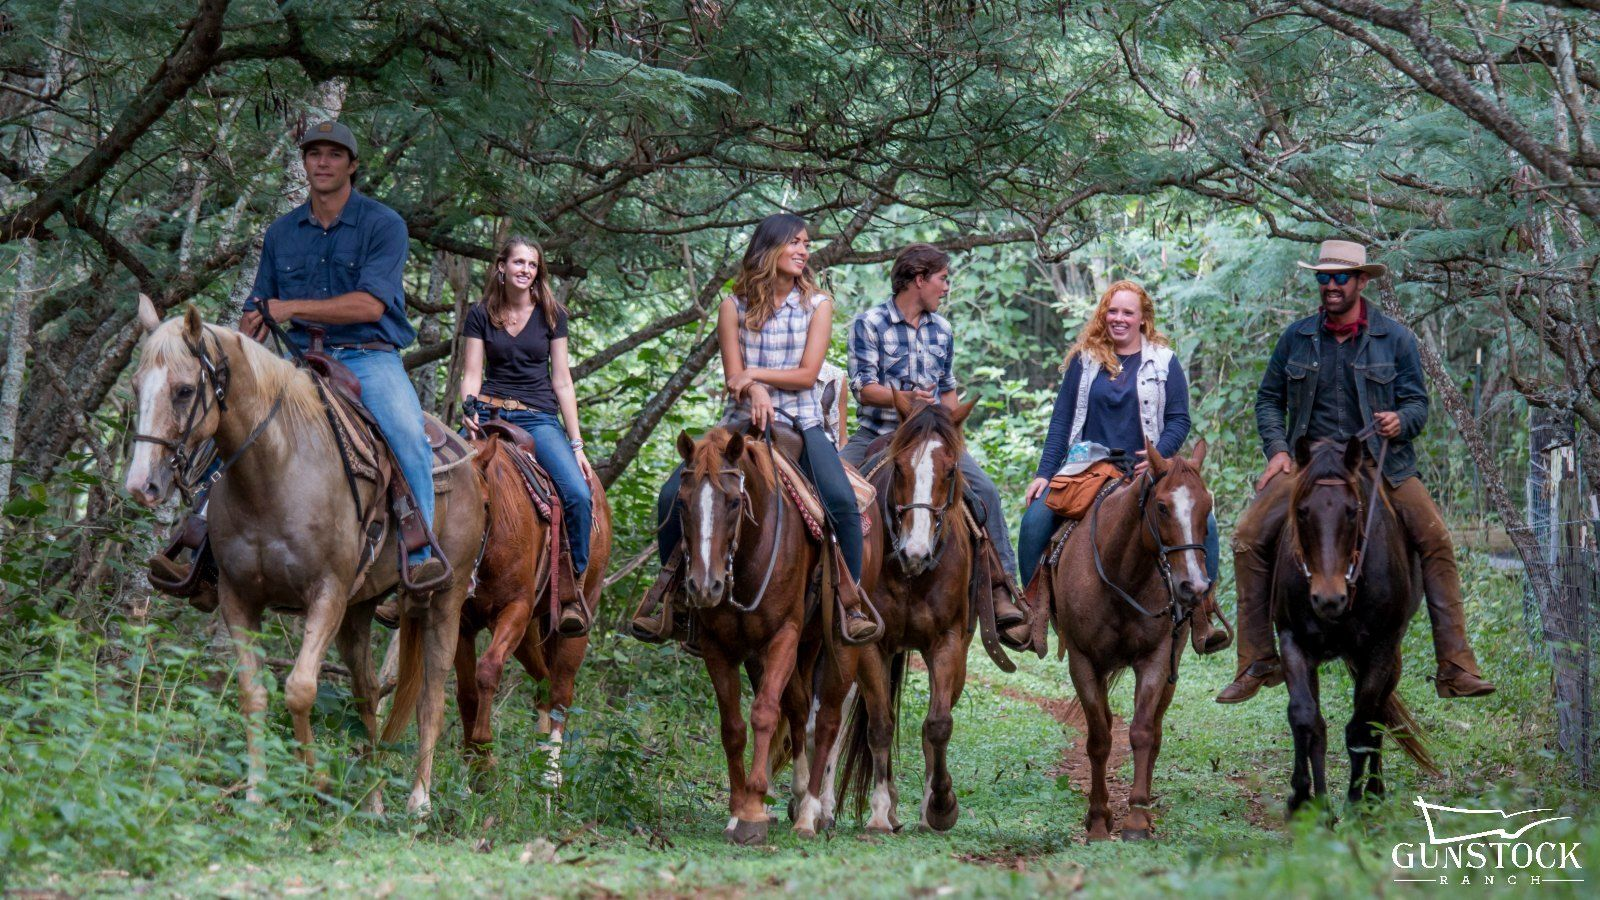 Group of people ride horses on a trail